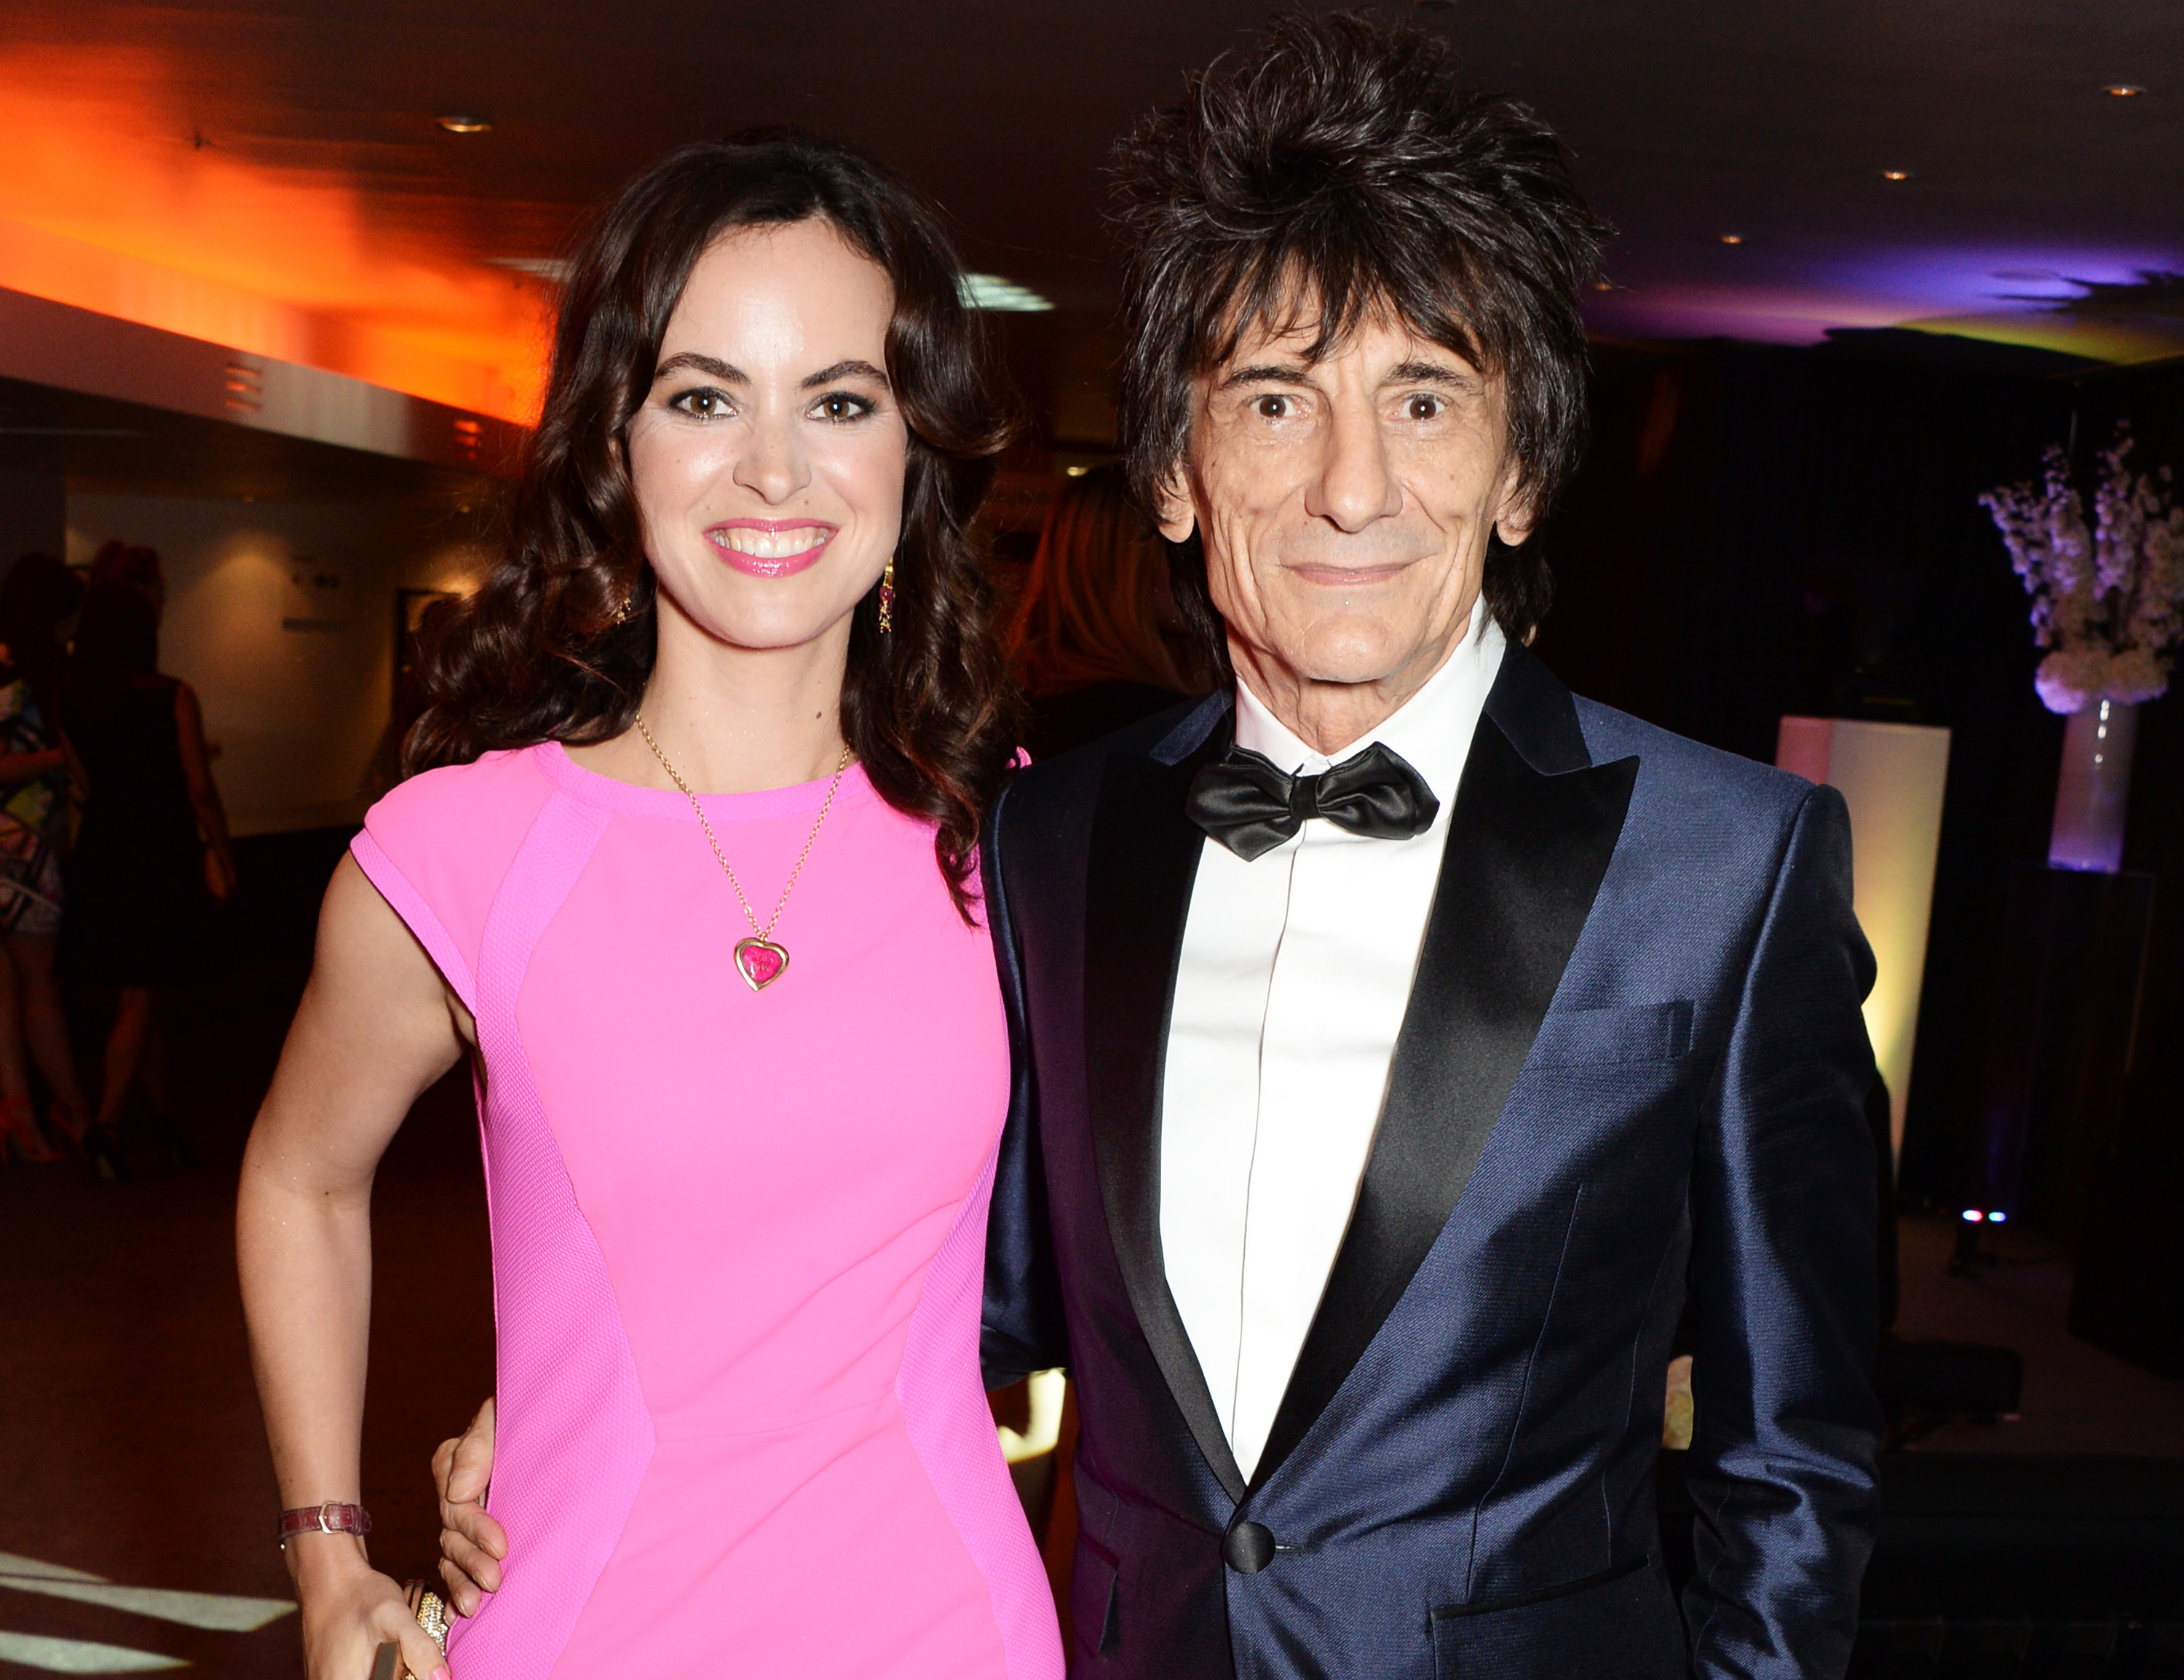 Ronnie Wood has introduced his baby twin daughters to the world and they're adorable